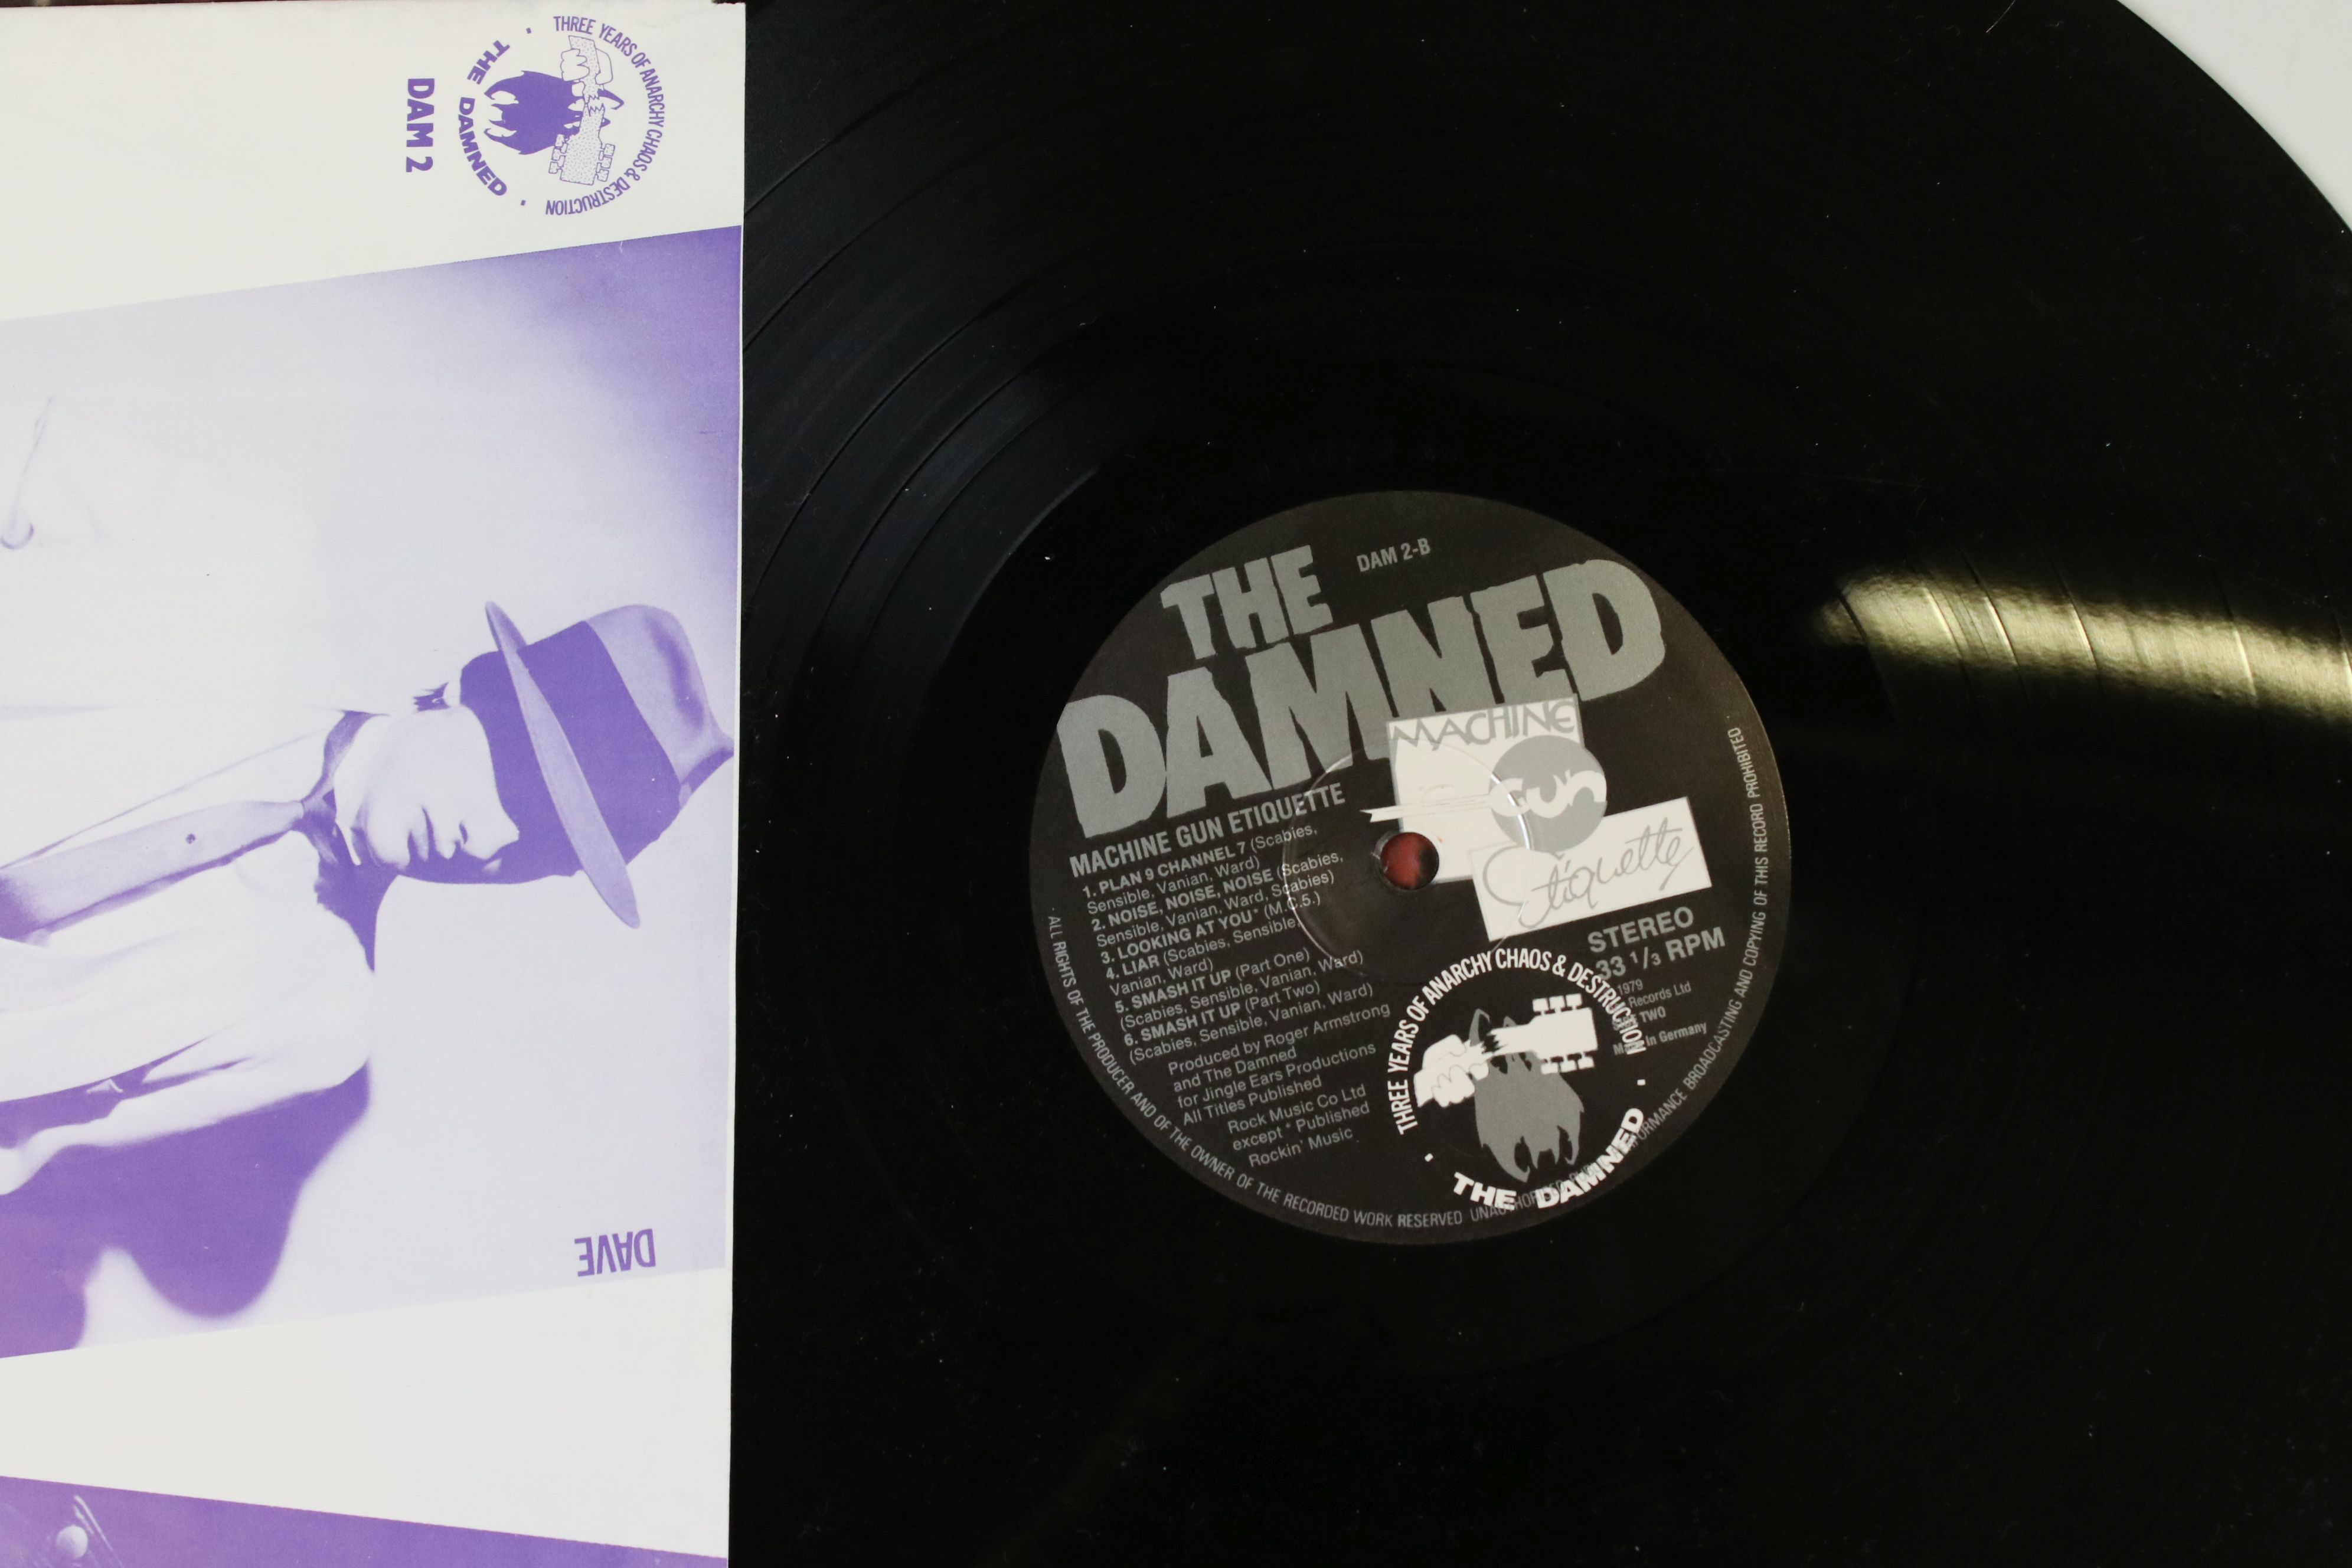 Vinyl - The Damned - Two reissue LPs to include Damned Damned Damned & Machine Gun Etiquette plus - Image 3 of 4